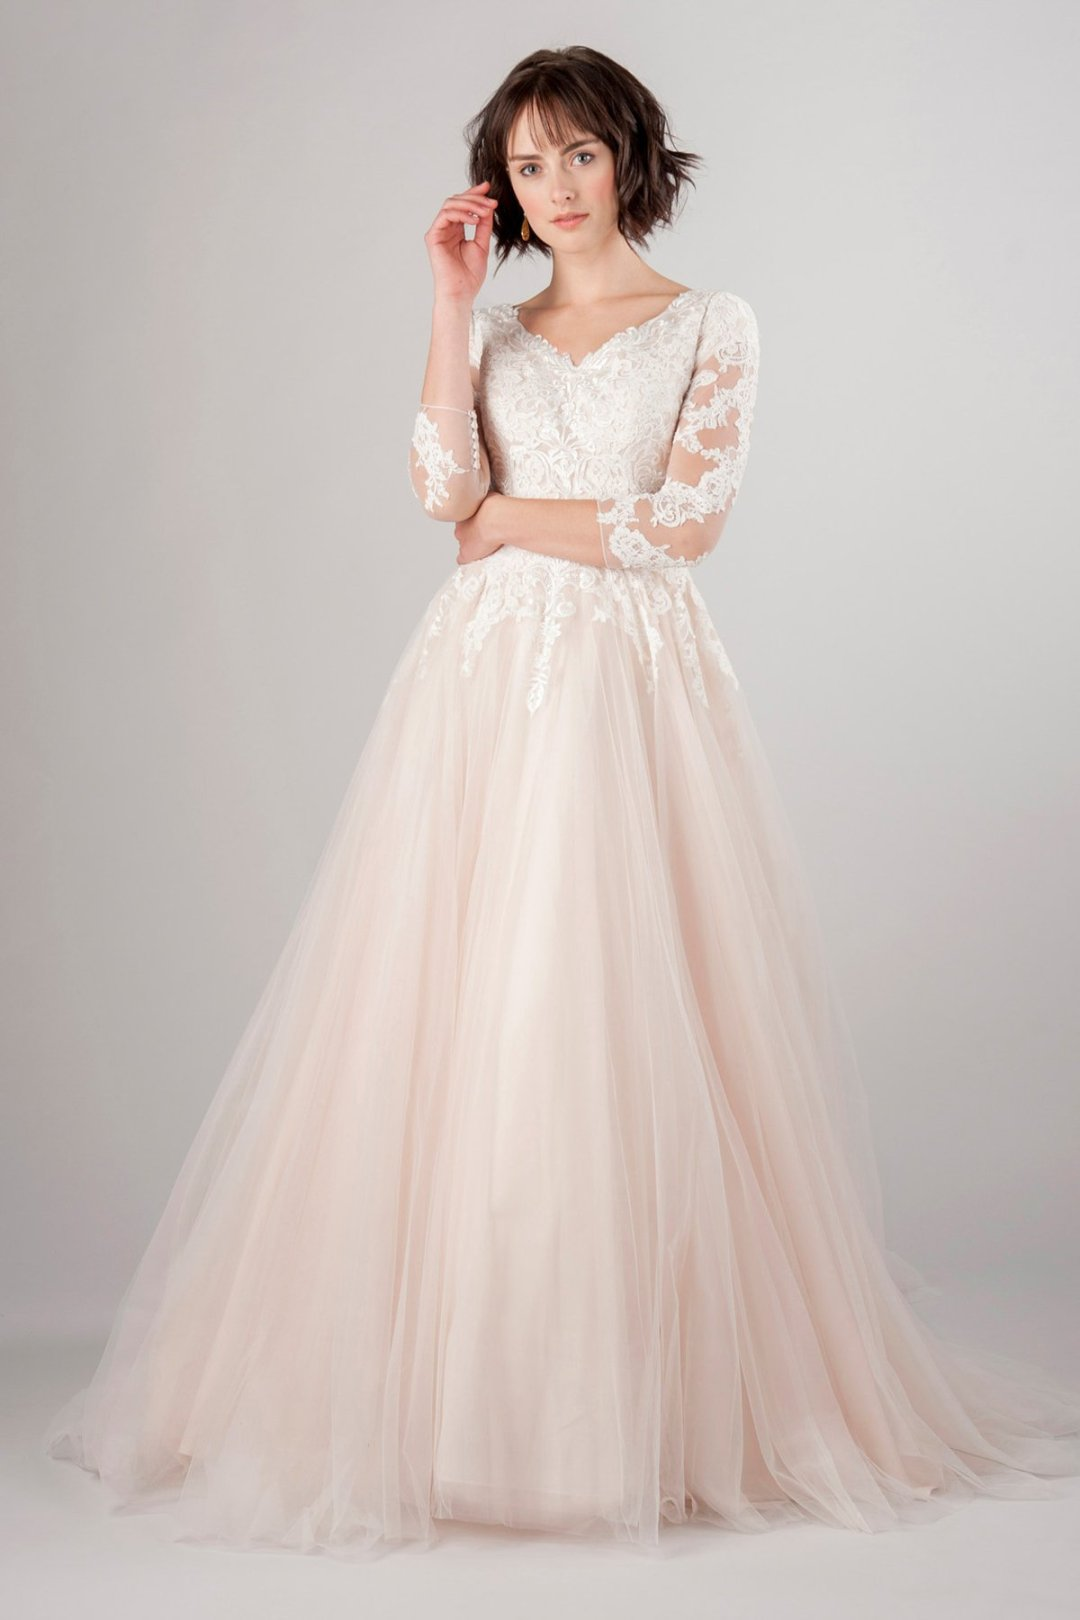 25 Modest Ball Gown Wedding Dresses - 7